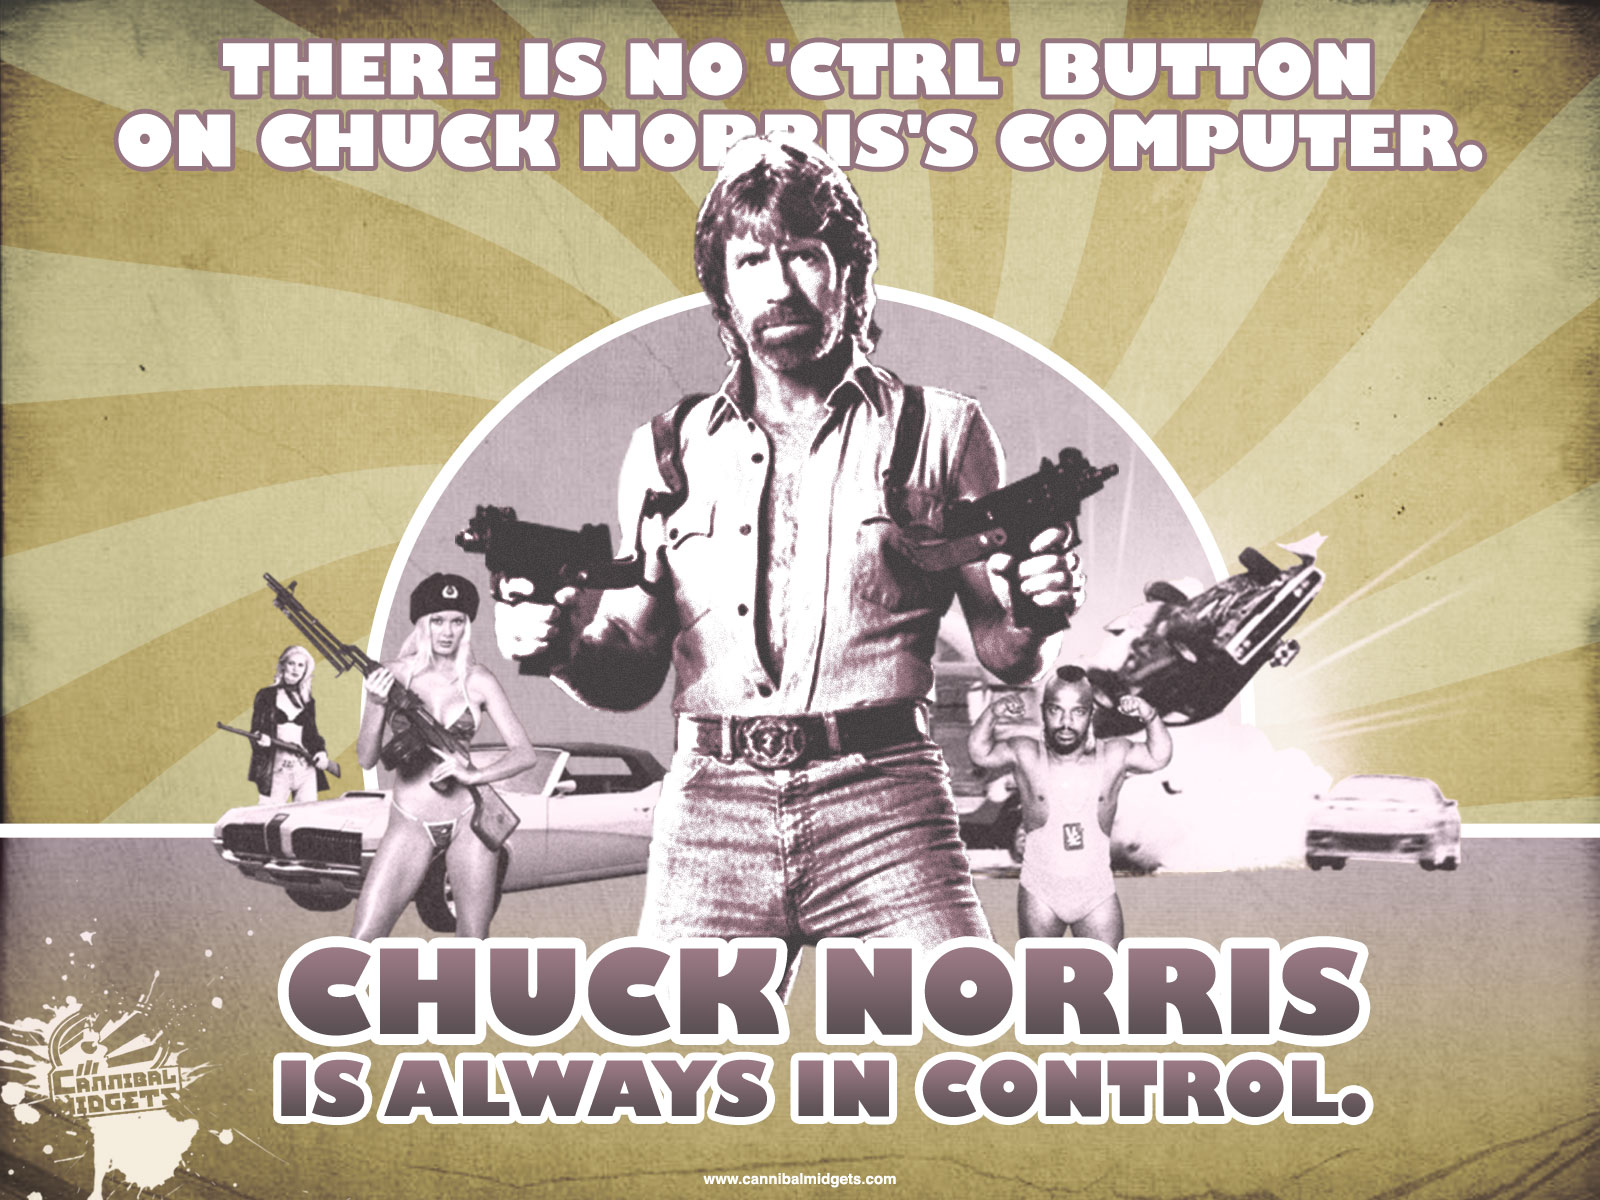 More Than Great Facts About Chuck Norris Like